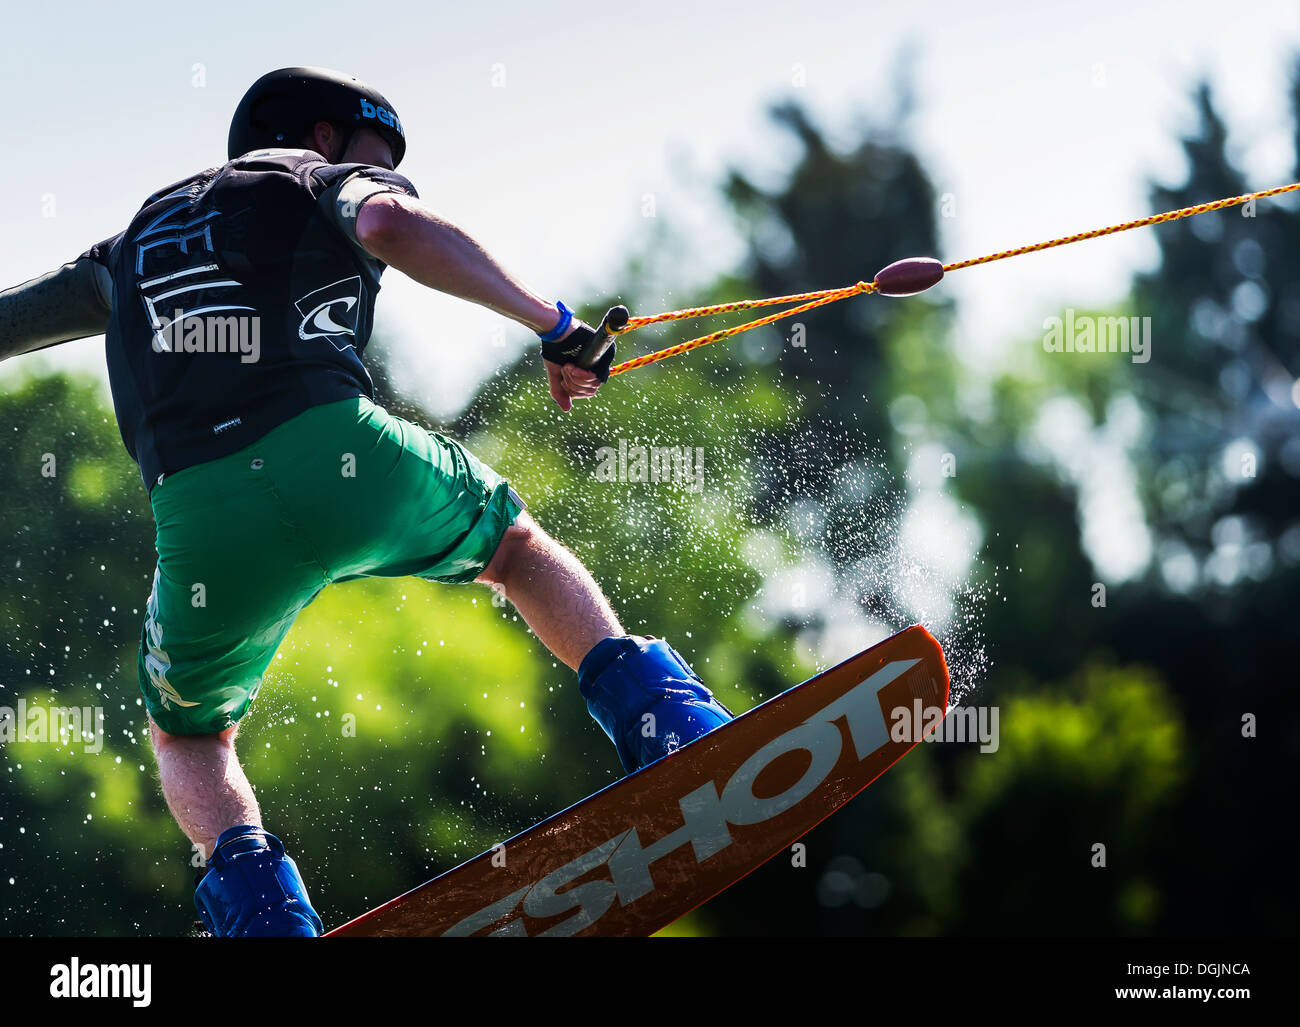 Wakeboard au Wakeboard Festival Basildon Park dans l'Essex. Photo Stock